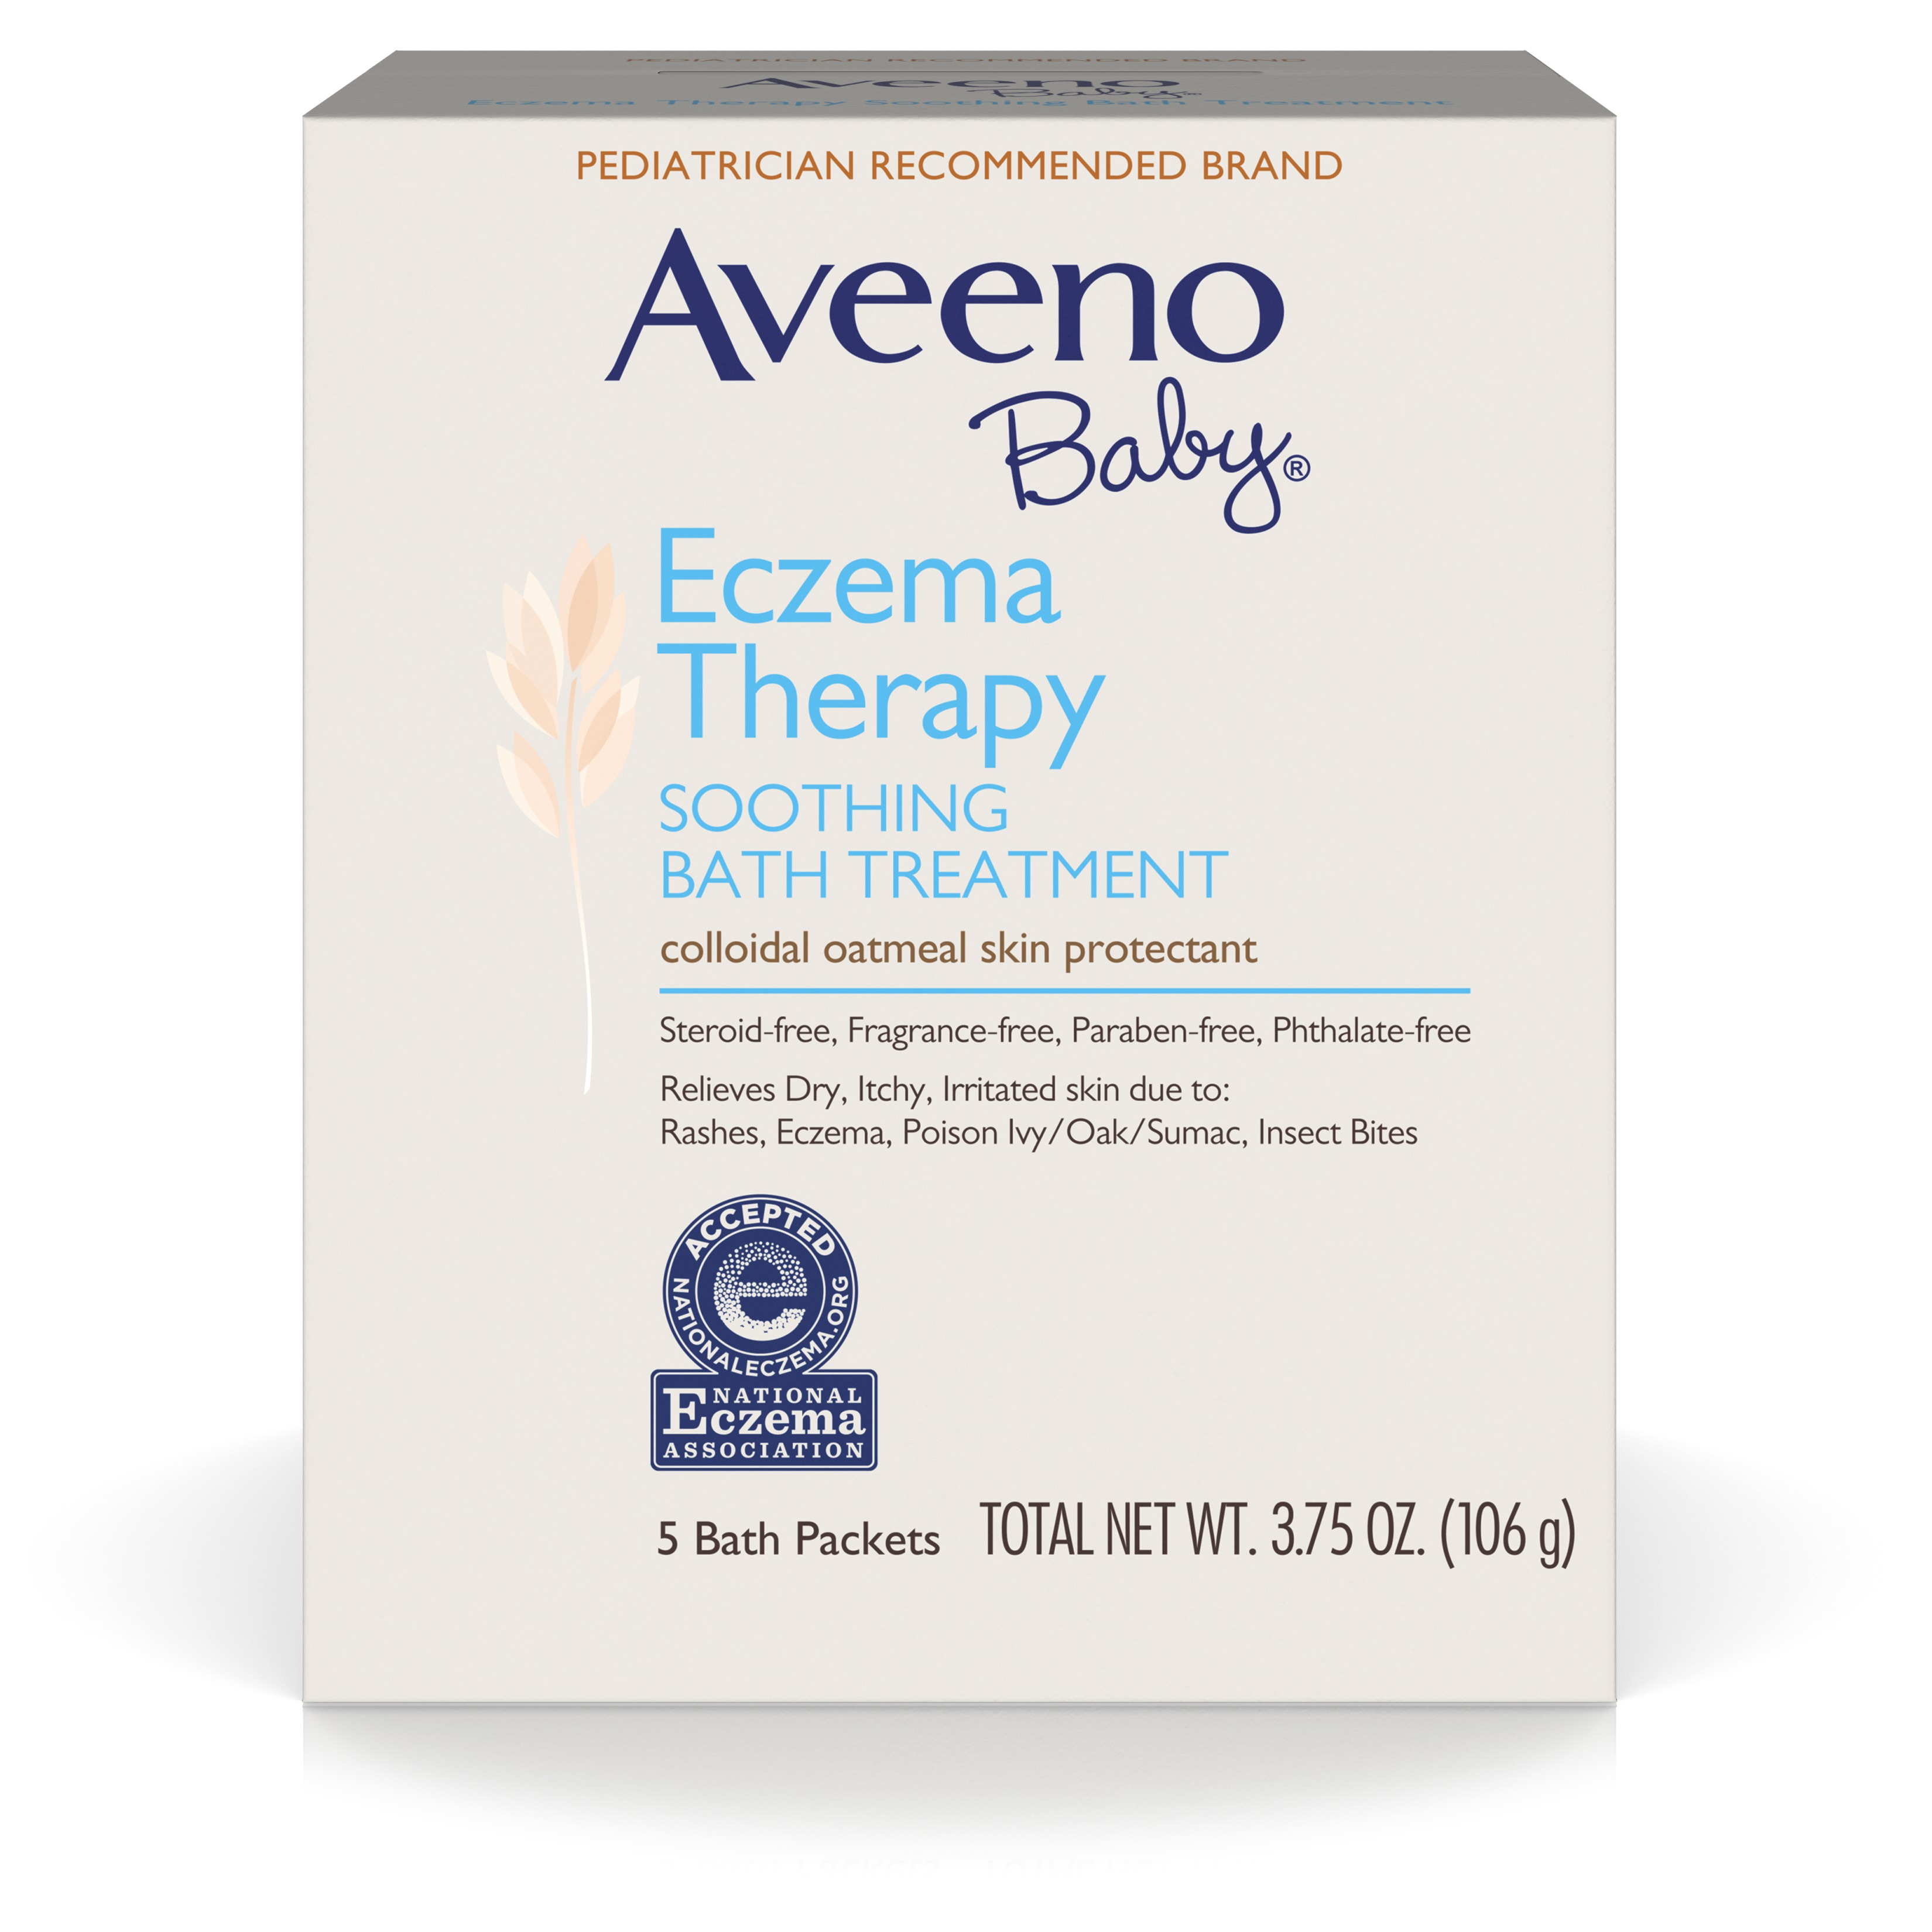 Aveeno Baby Eczema Therapy Soothing Bath Treatment For Minor Skin Irritations, 5 Count